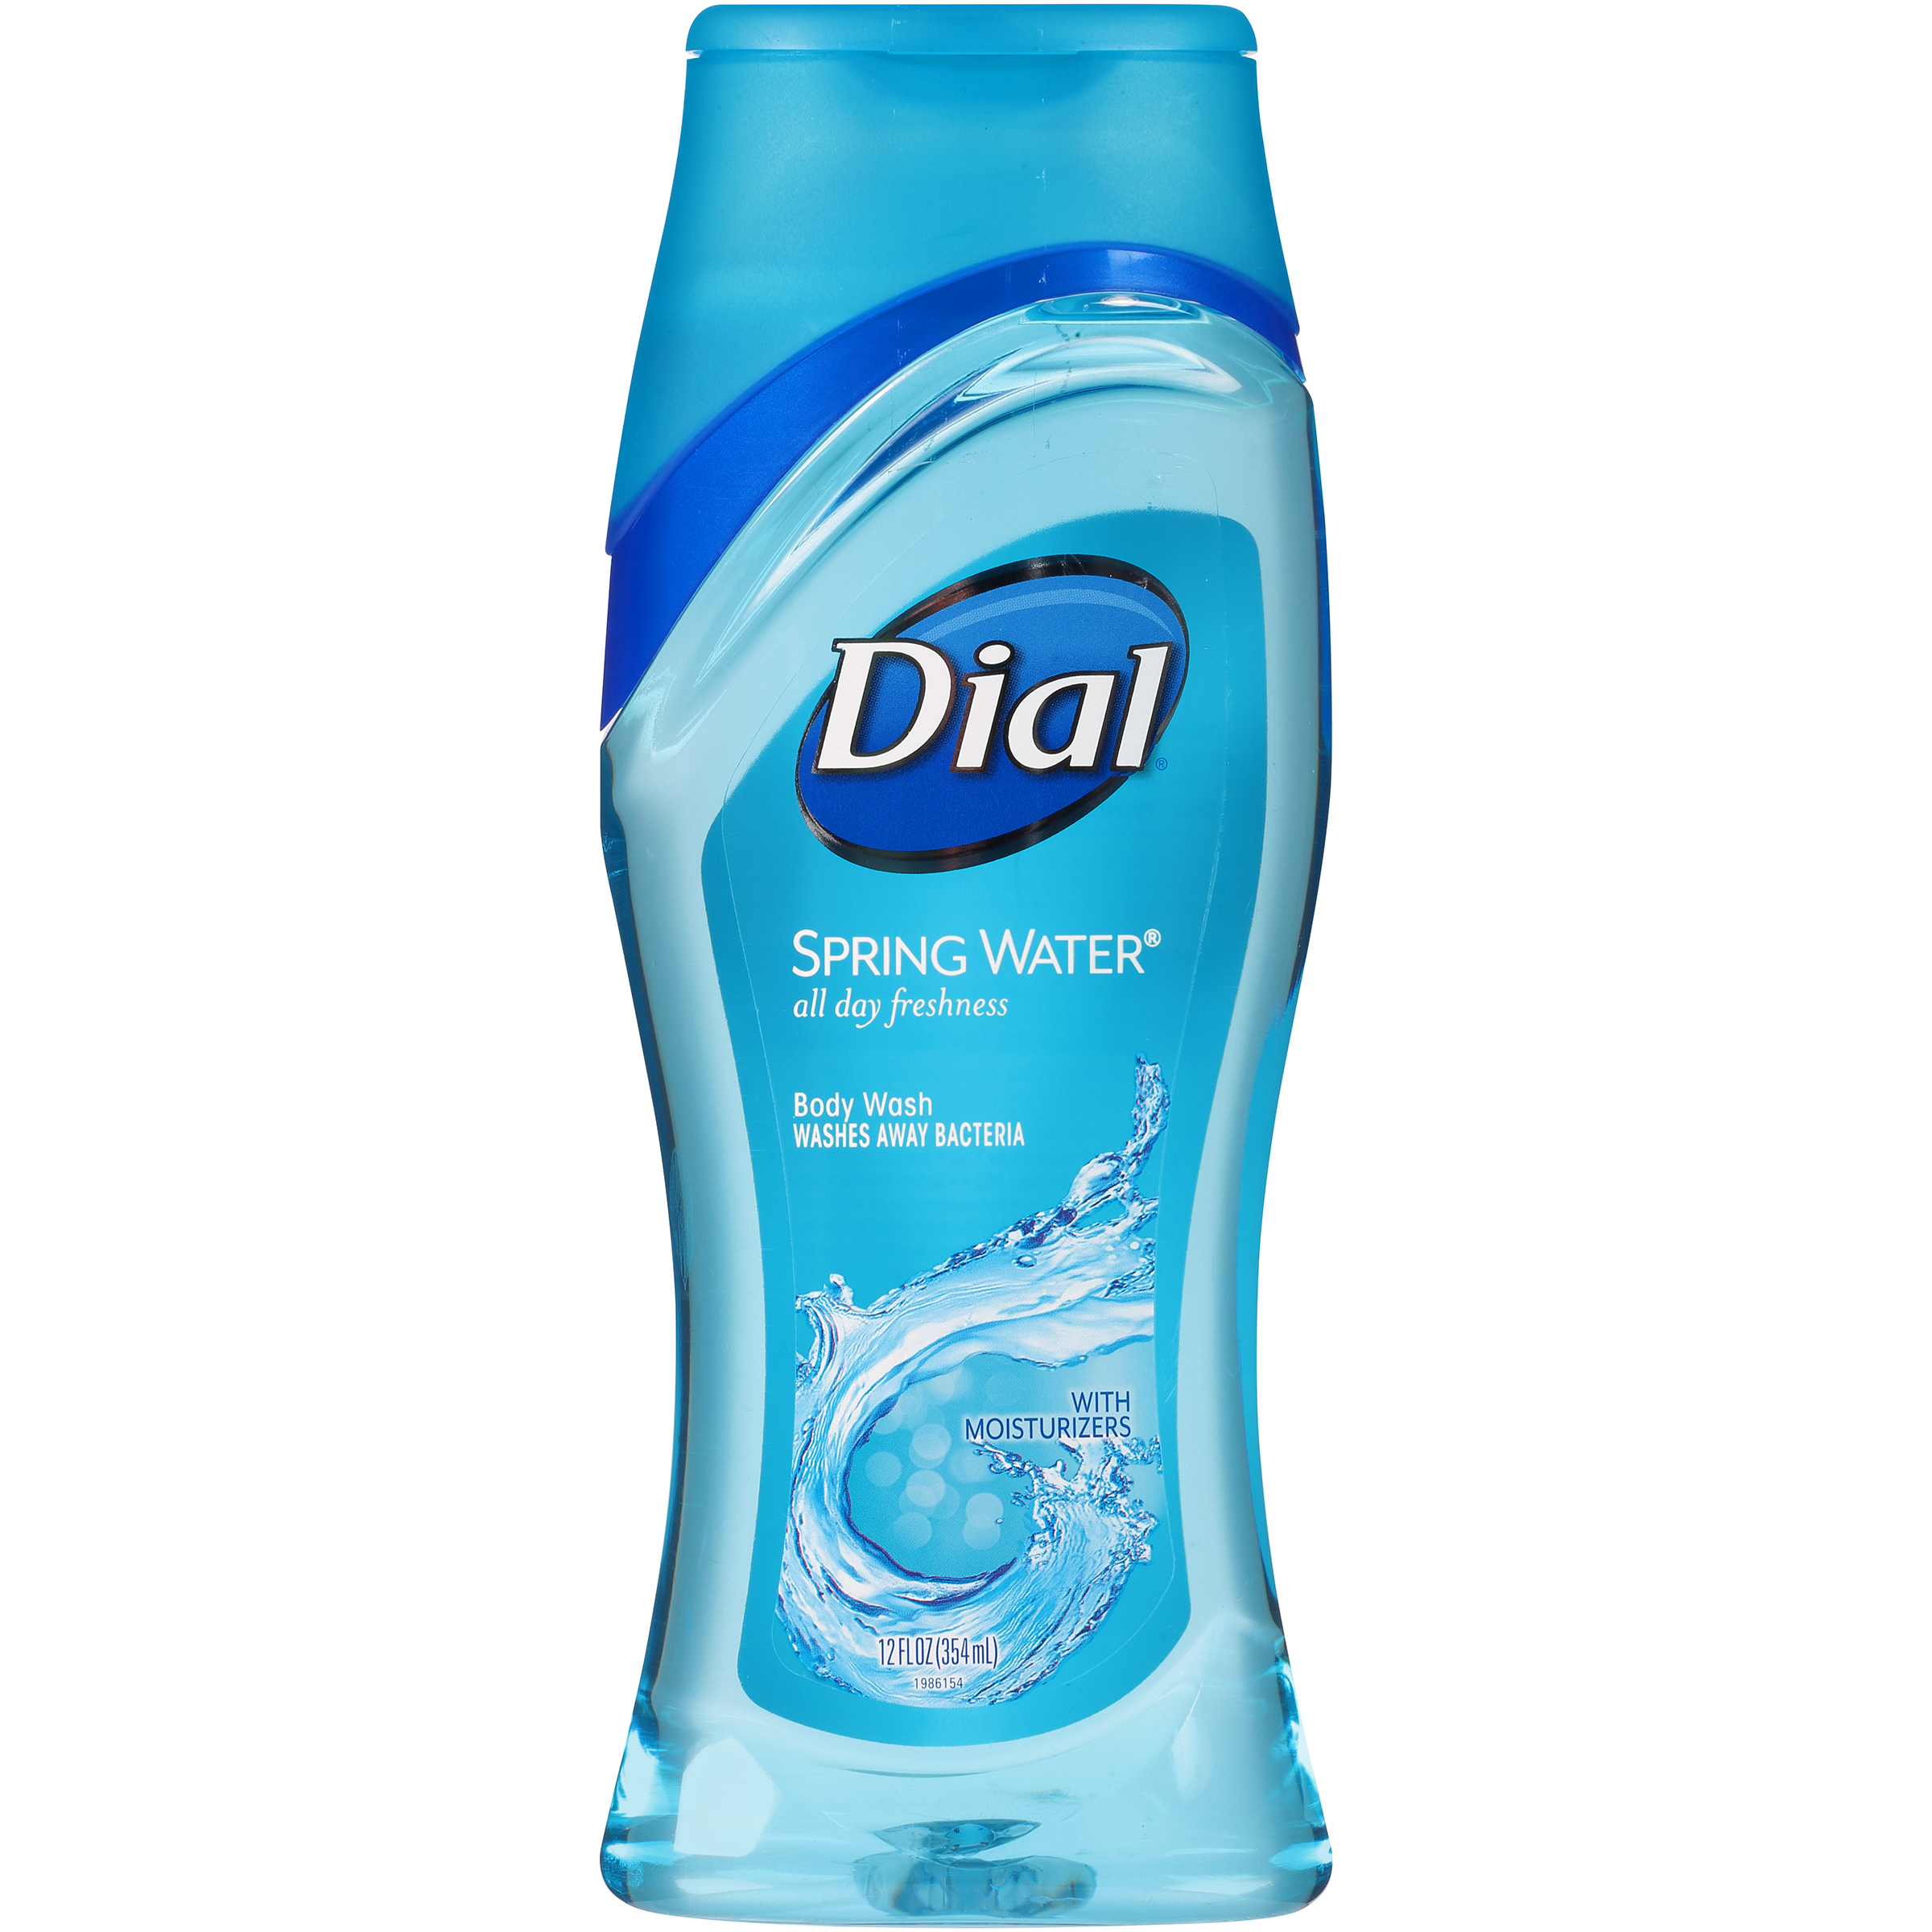 Dial Body Wash, Spring Water, 11.75 Ounce